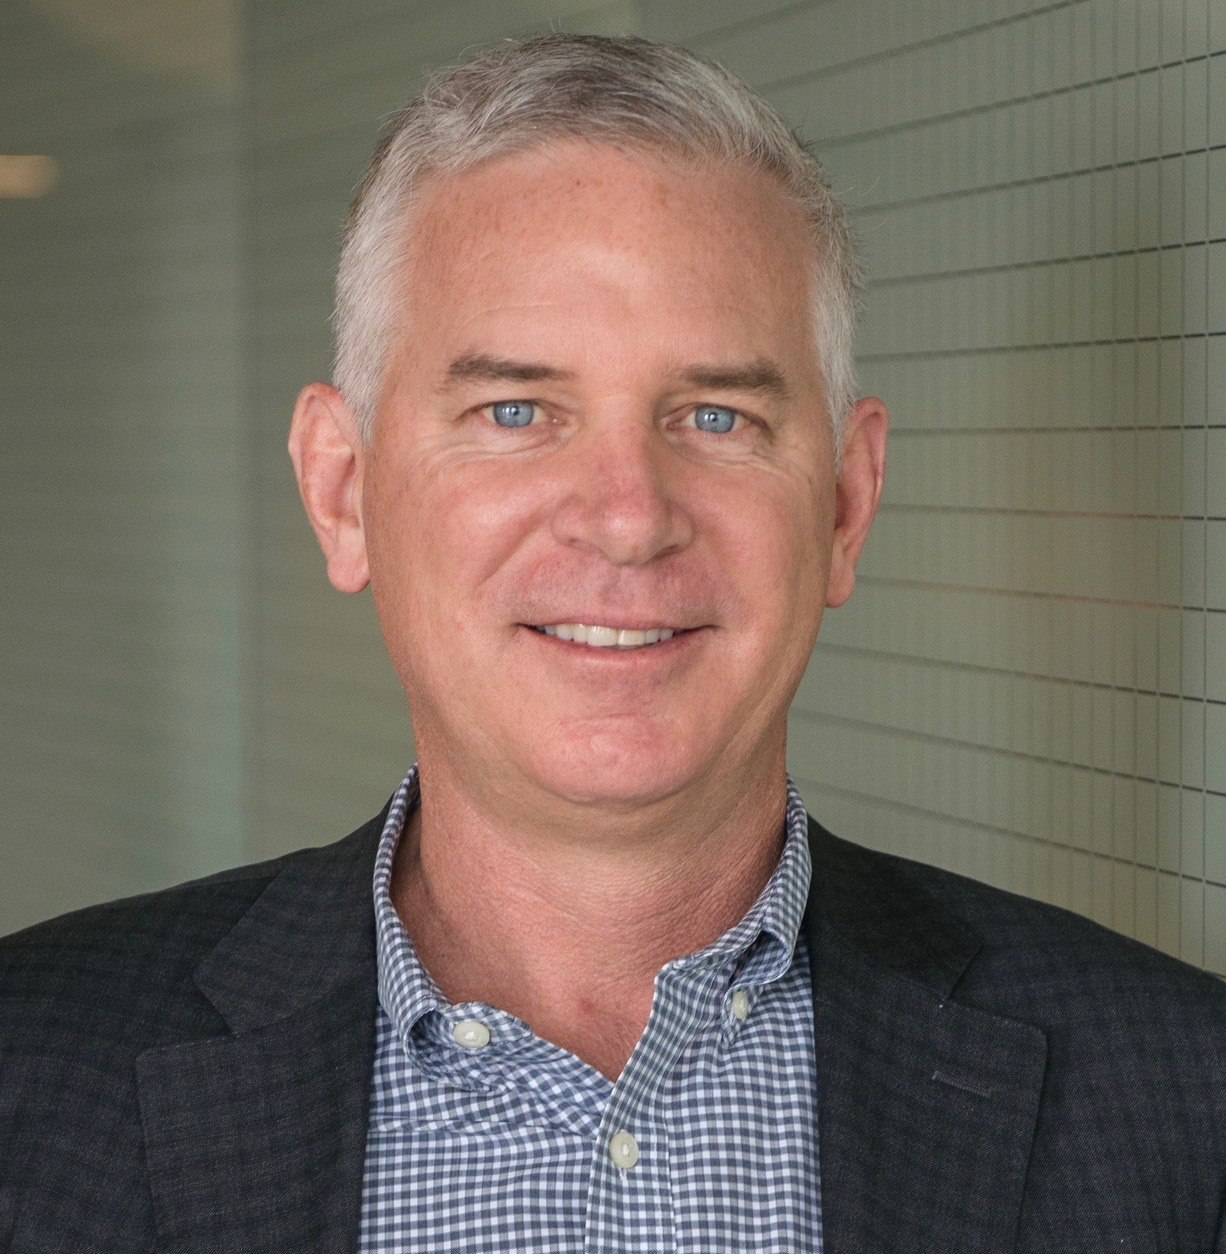 Xealth's CEO Shares Impact of Digital Health in 2020 and What's Ahead in 2021